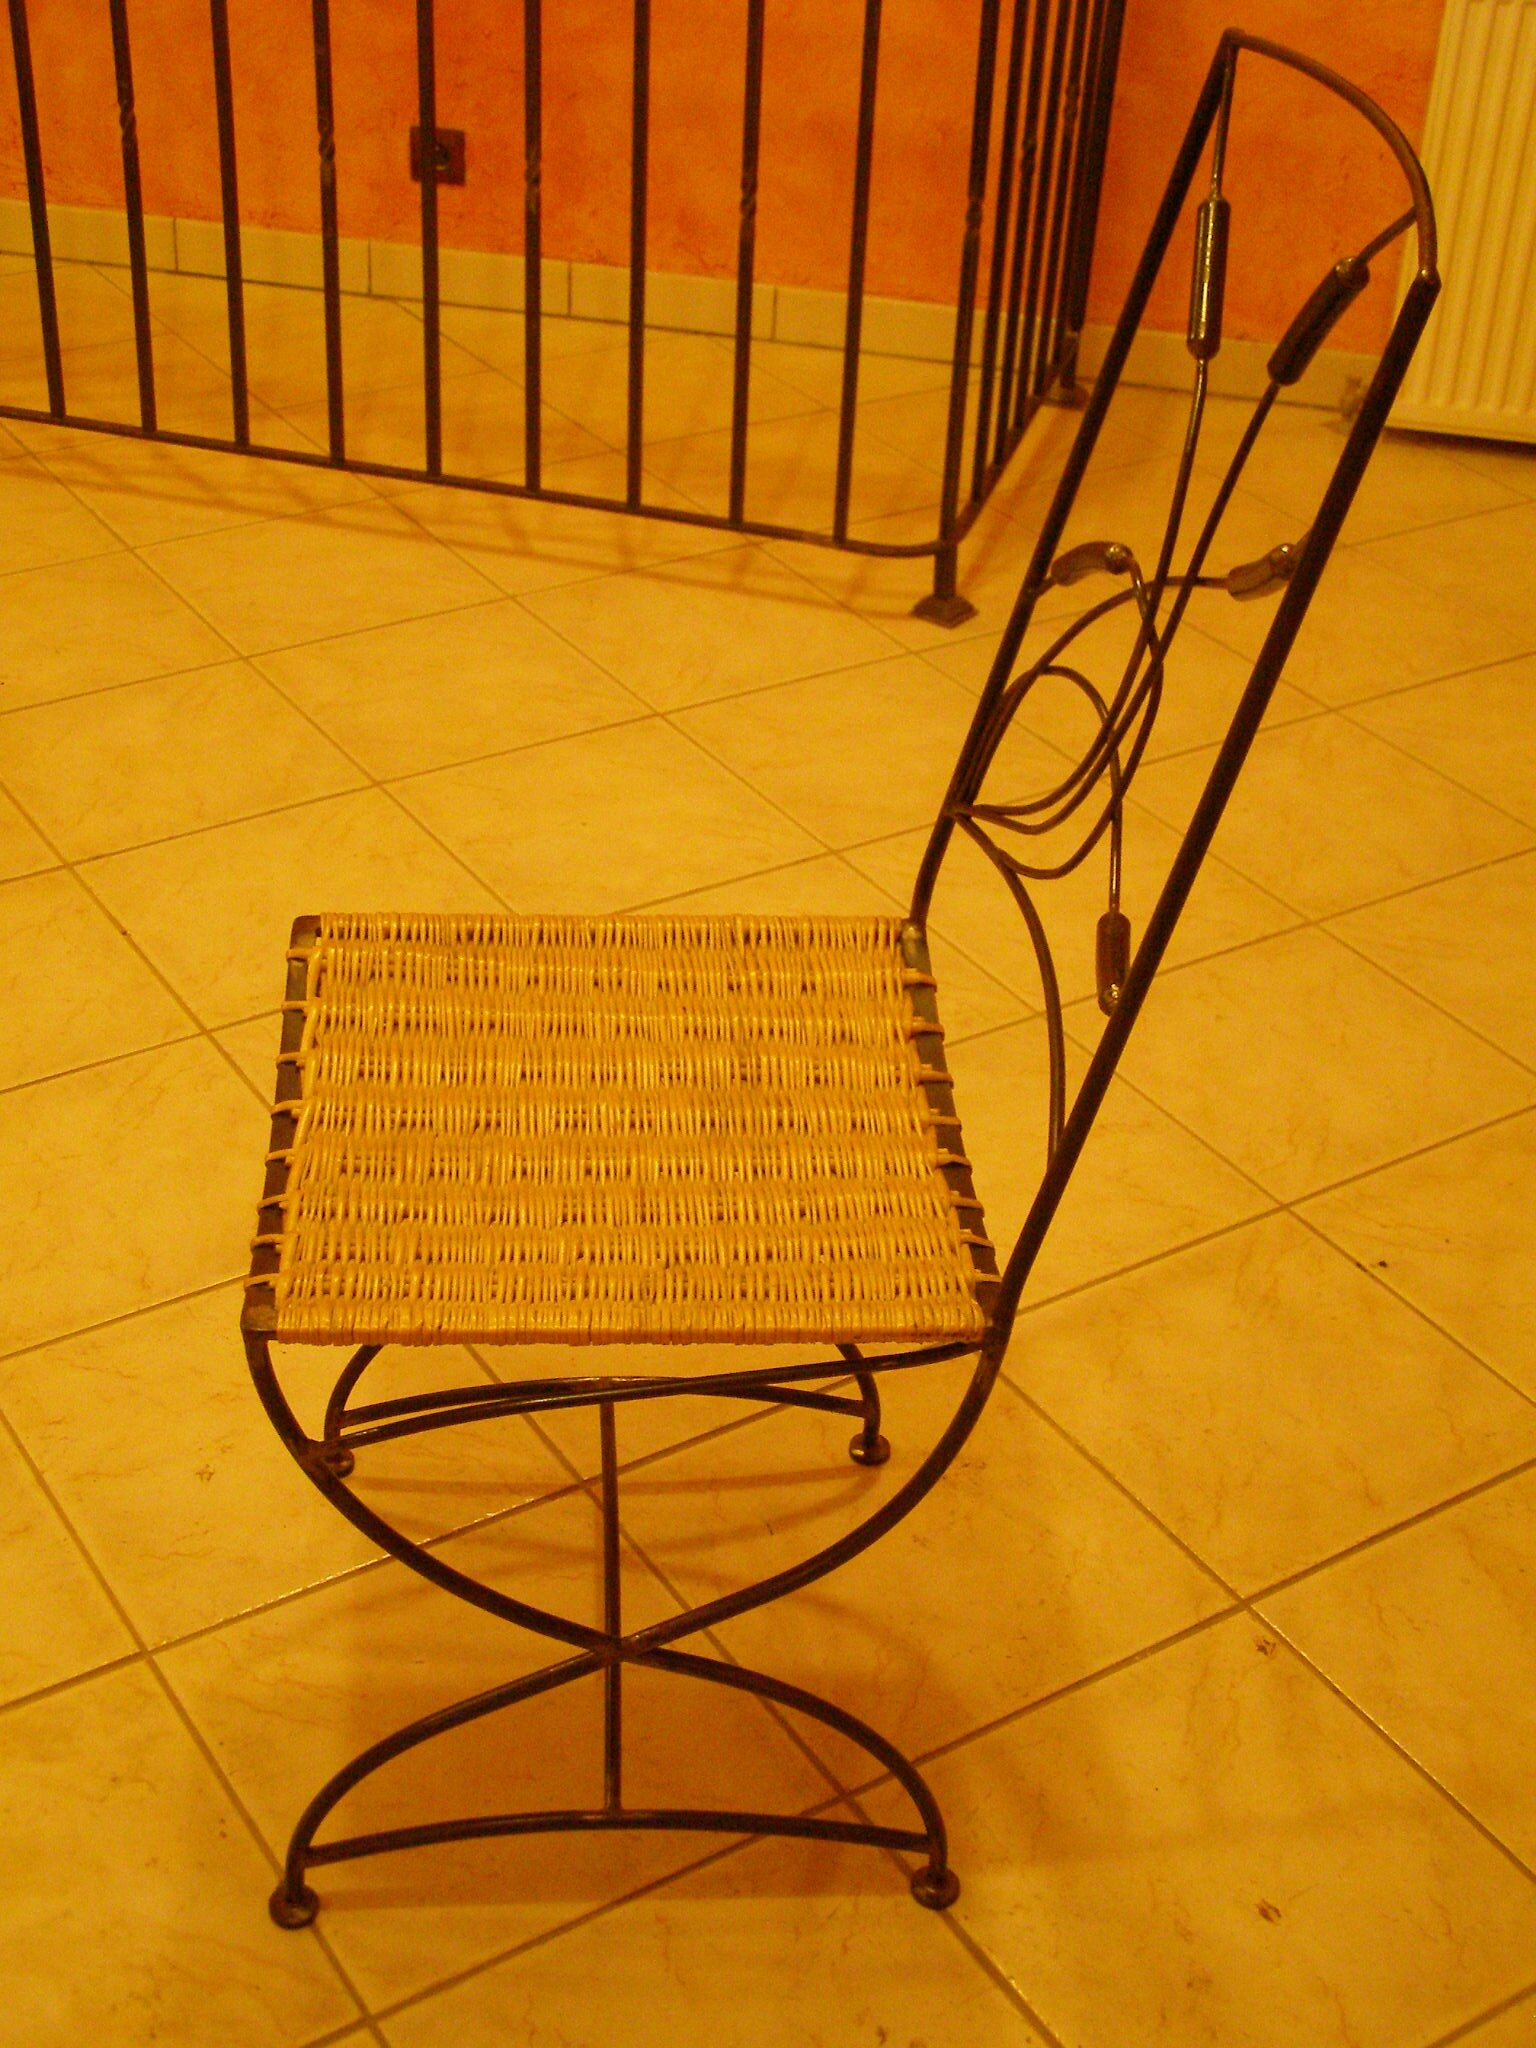 Surprenant modele de chaise maisonco for Modele de chaise